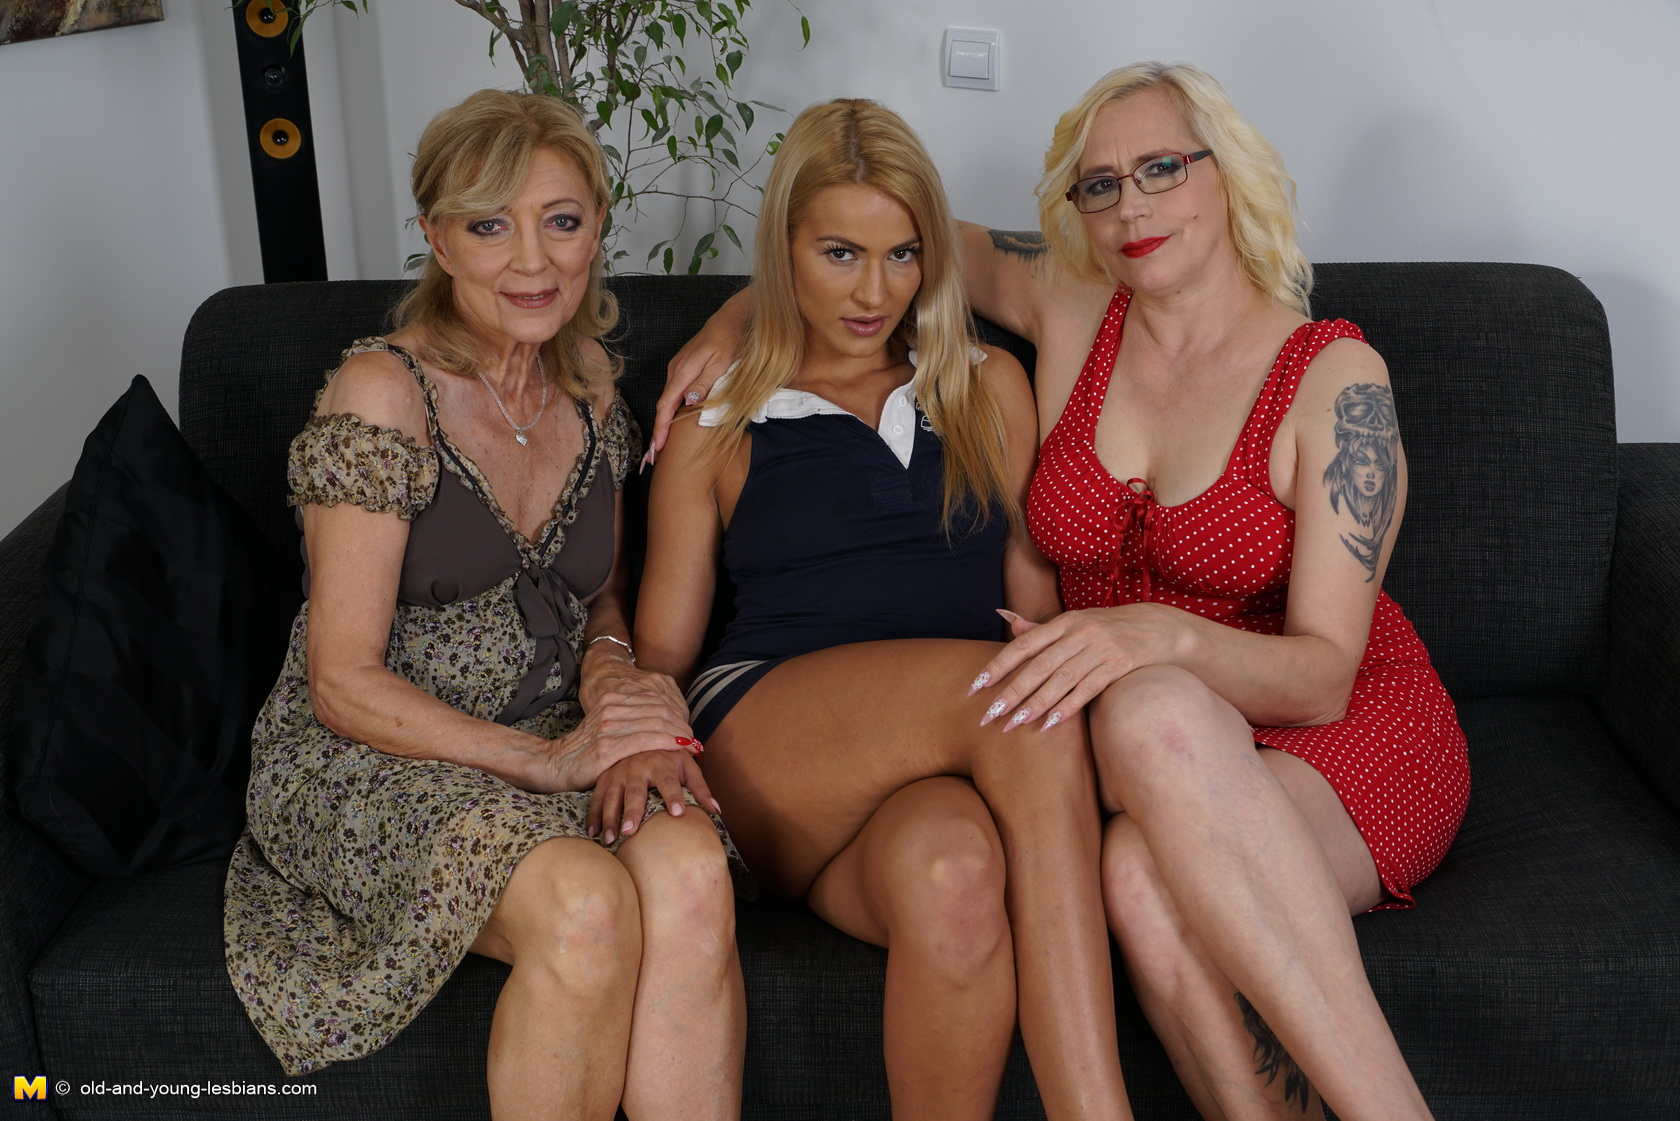 three naughty old and young lesbians make it wild - pussyfur